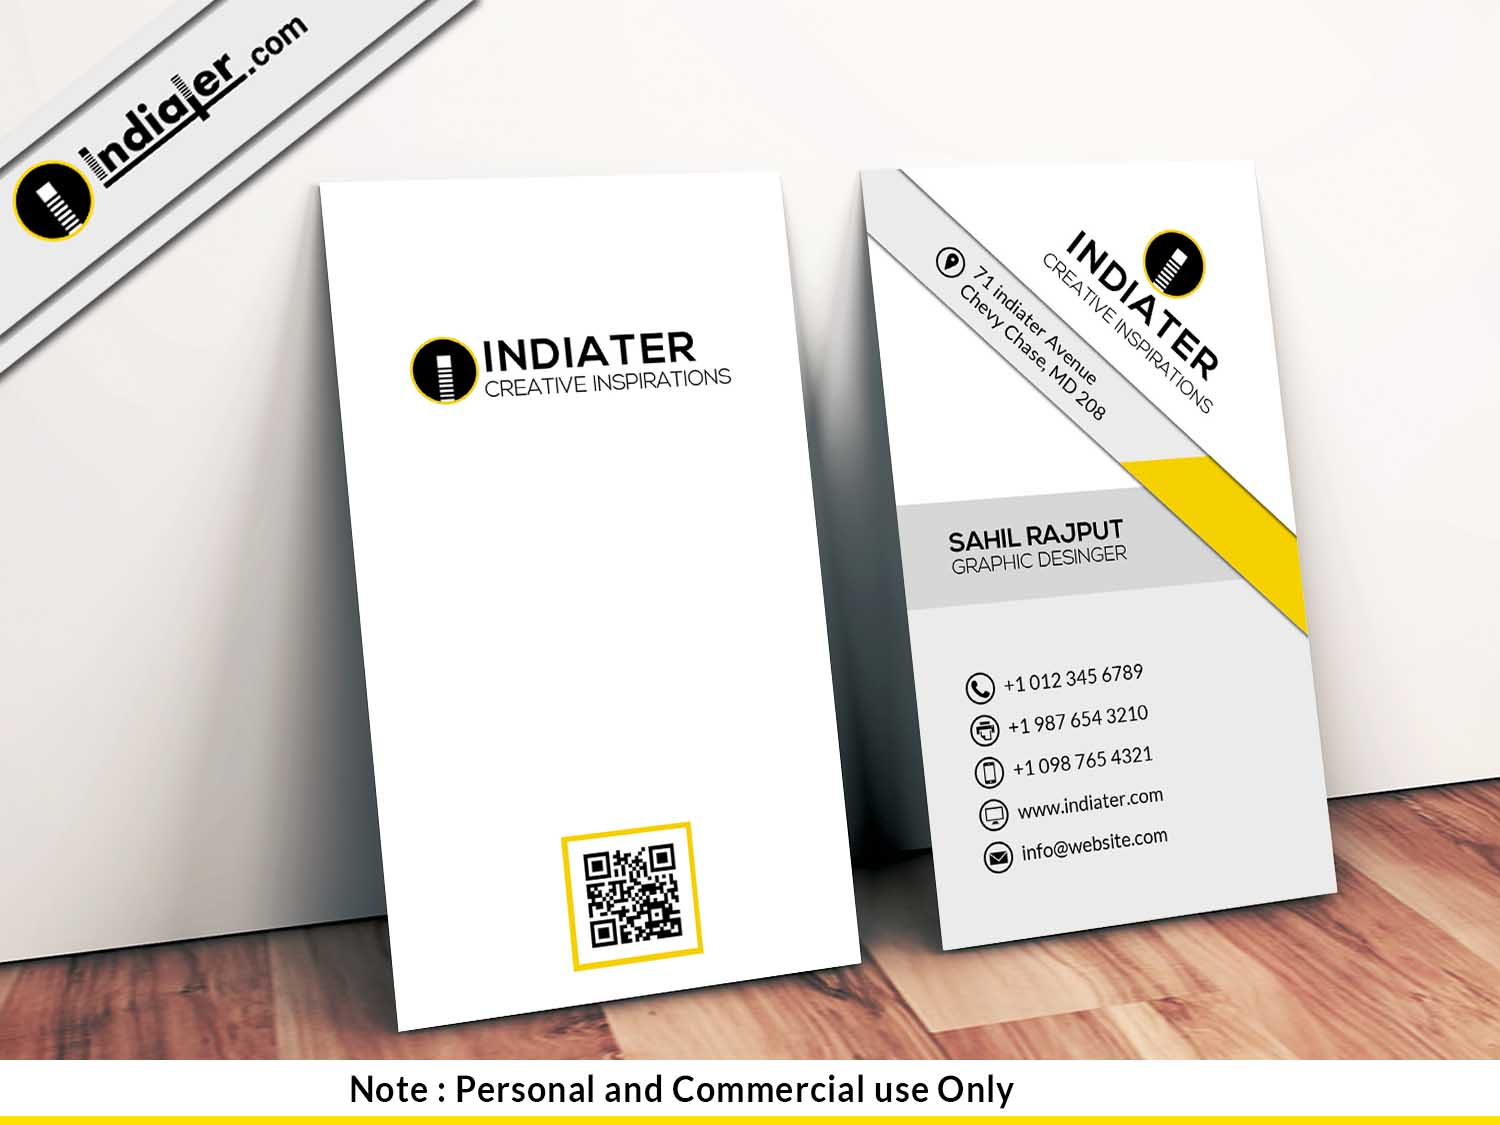 financial consultant business cards psd template indiater. Black Bedroom Furniture Sets. Home Design Ideas